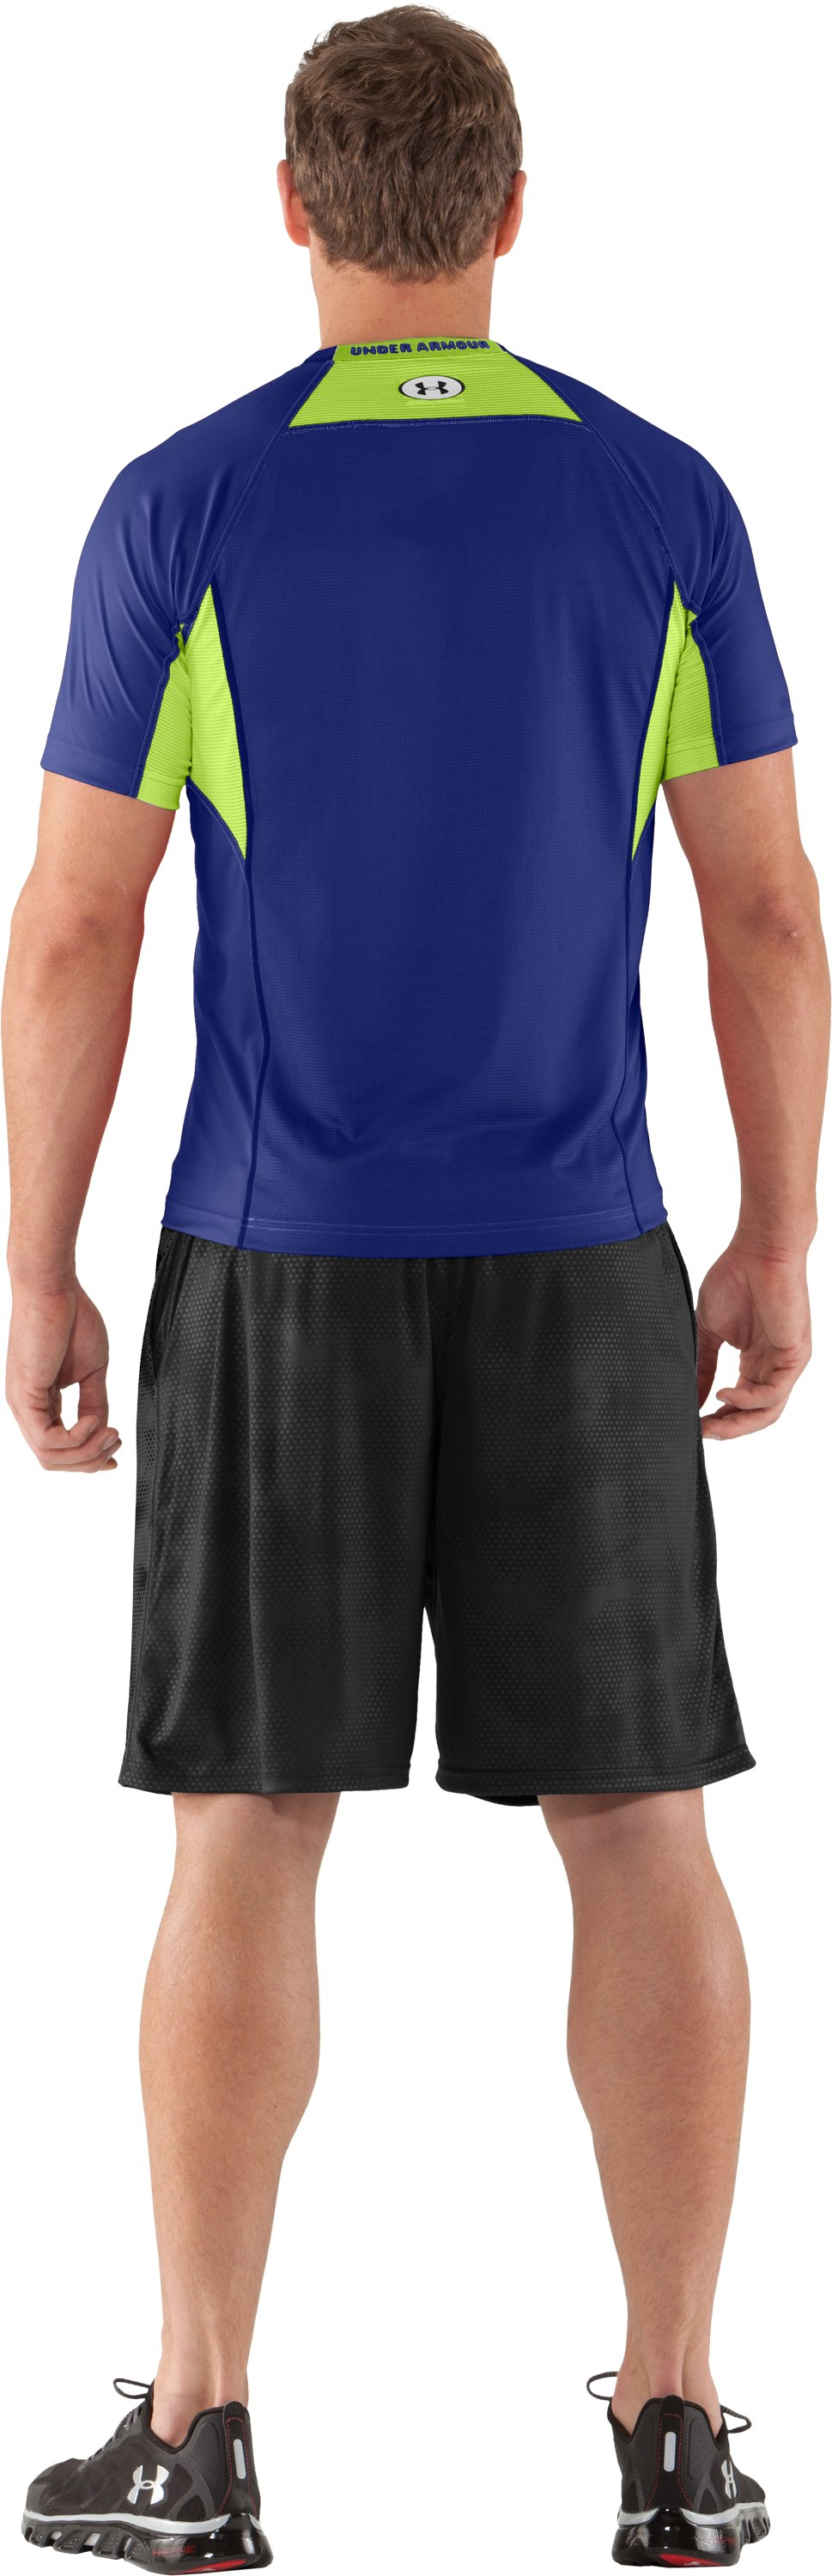 Men's HeatGear® Flyweight Fitted Short Sleeve, Royal, Back